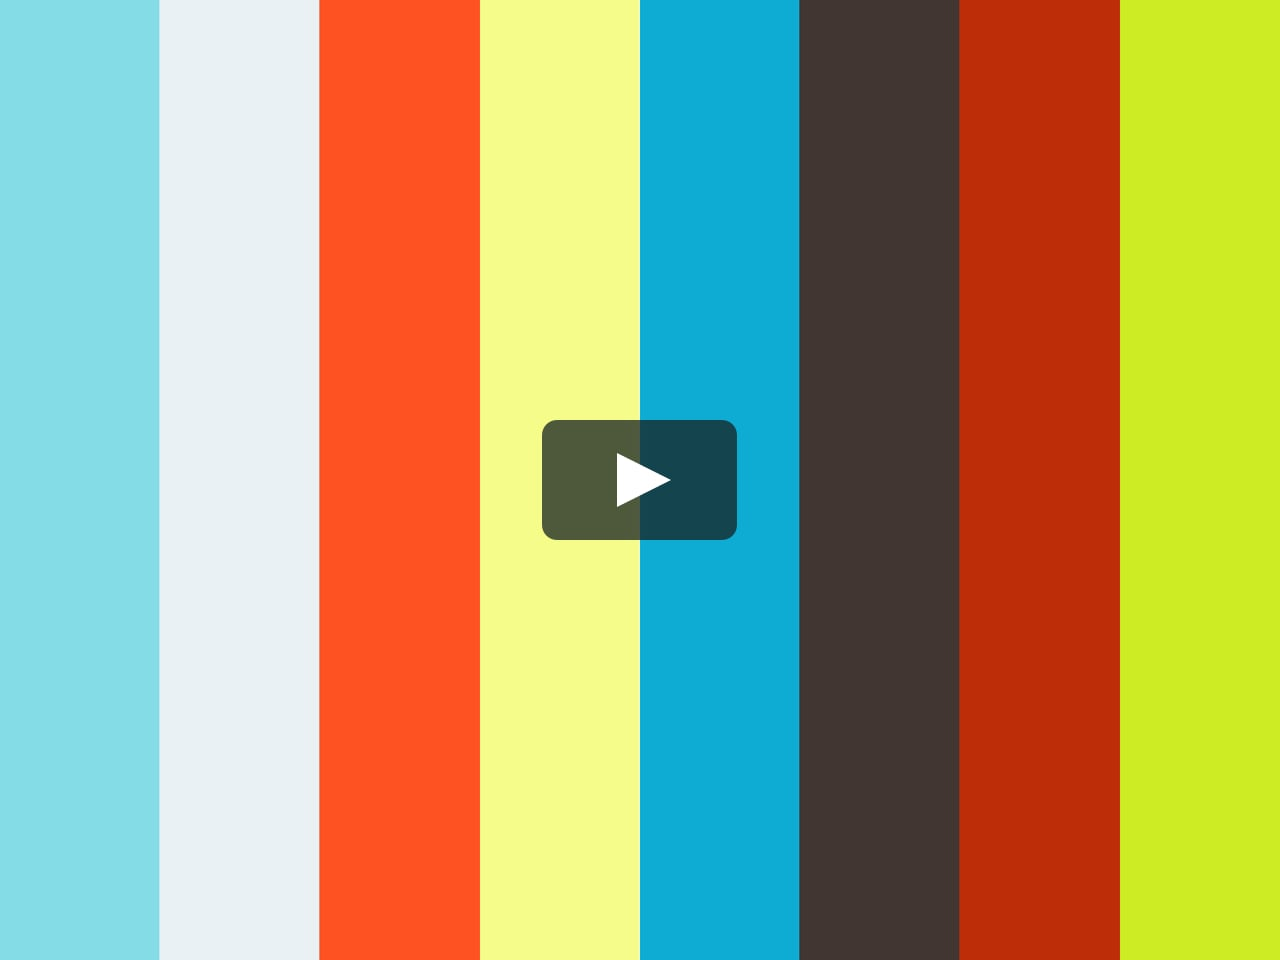 Merry Christmas, Happy Holidays by NSYNC on Vimeo